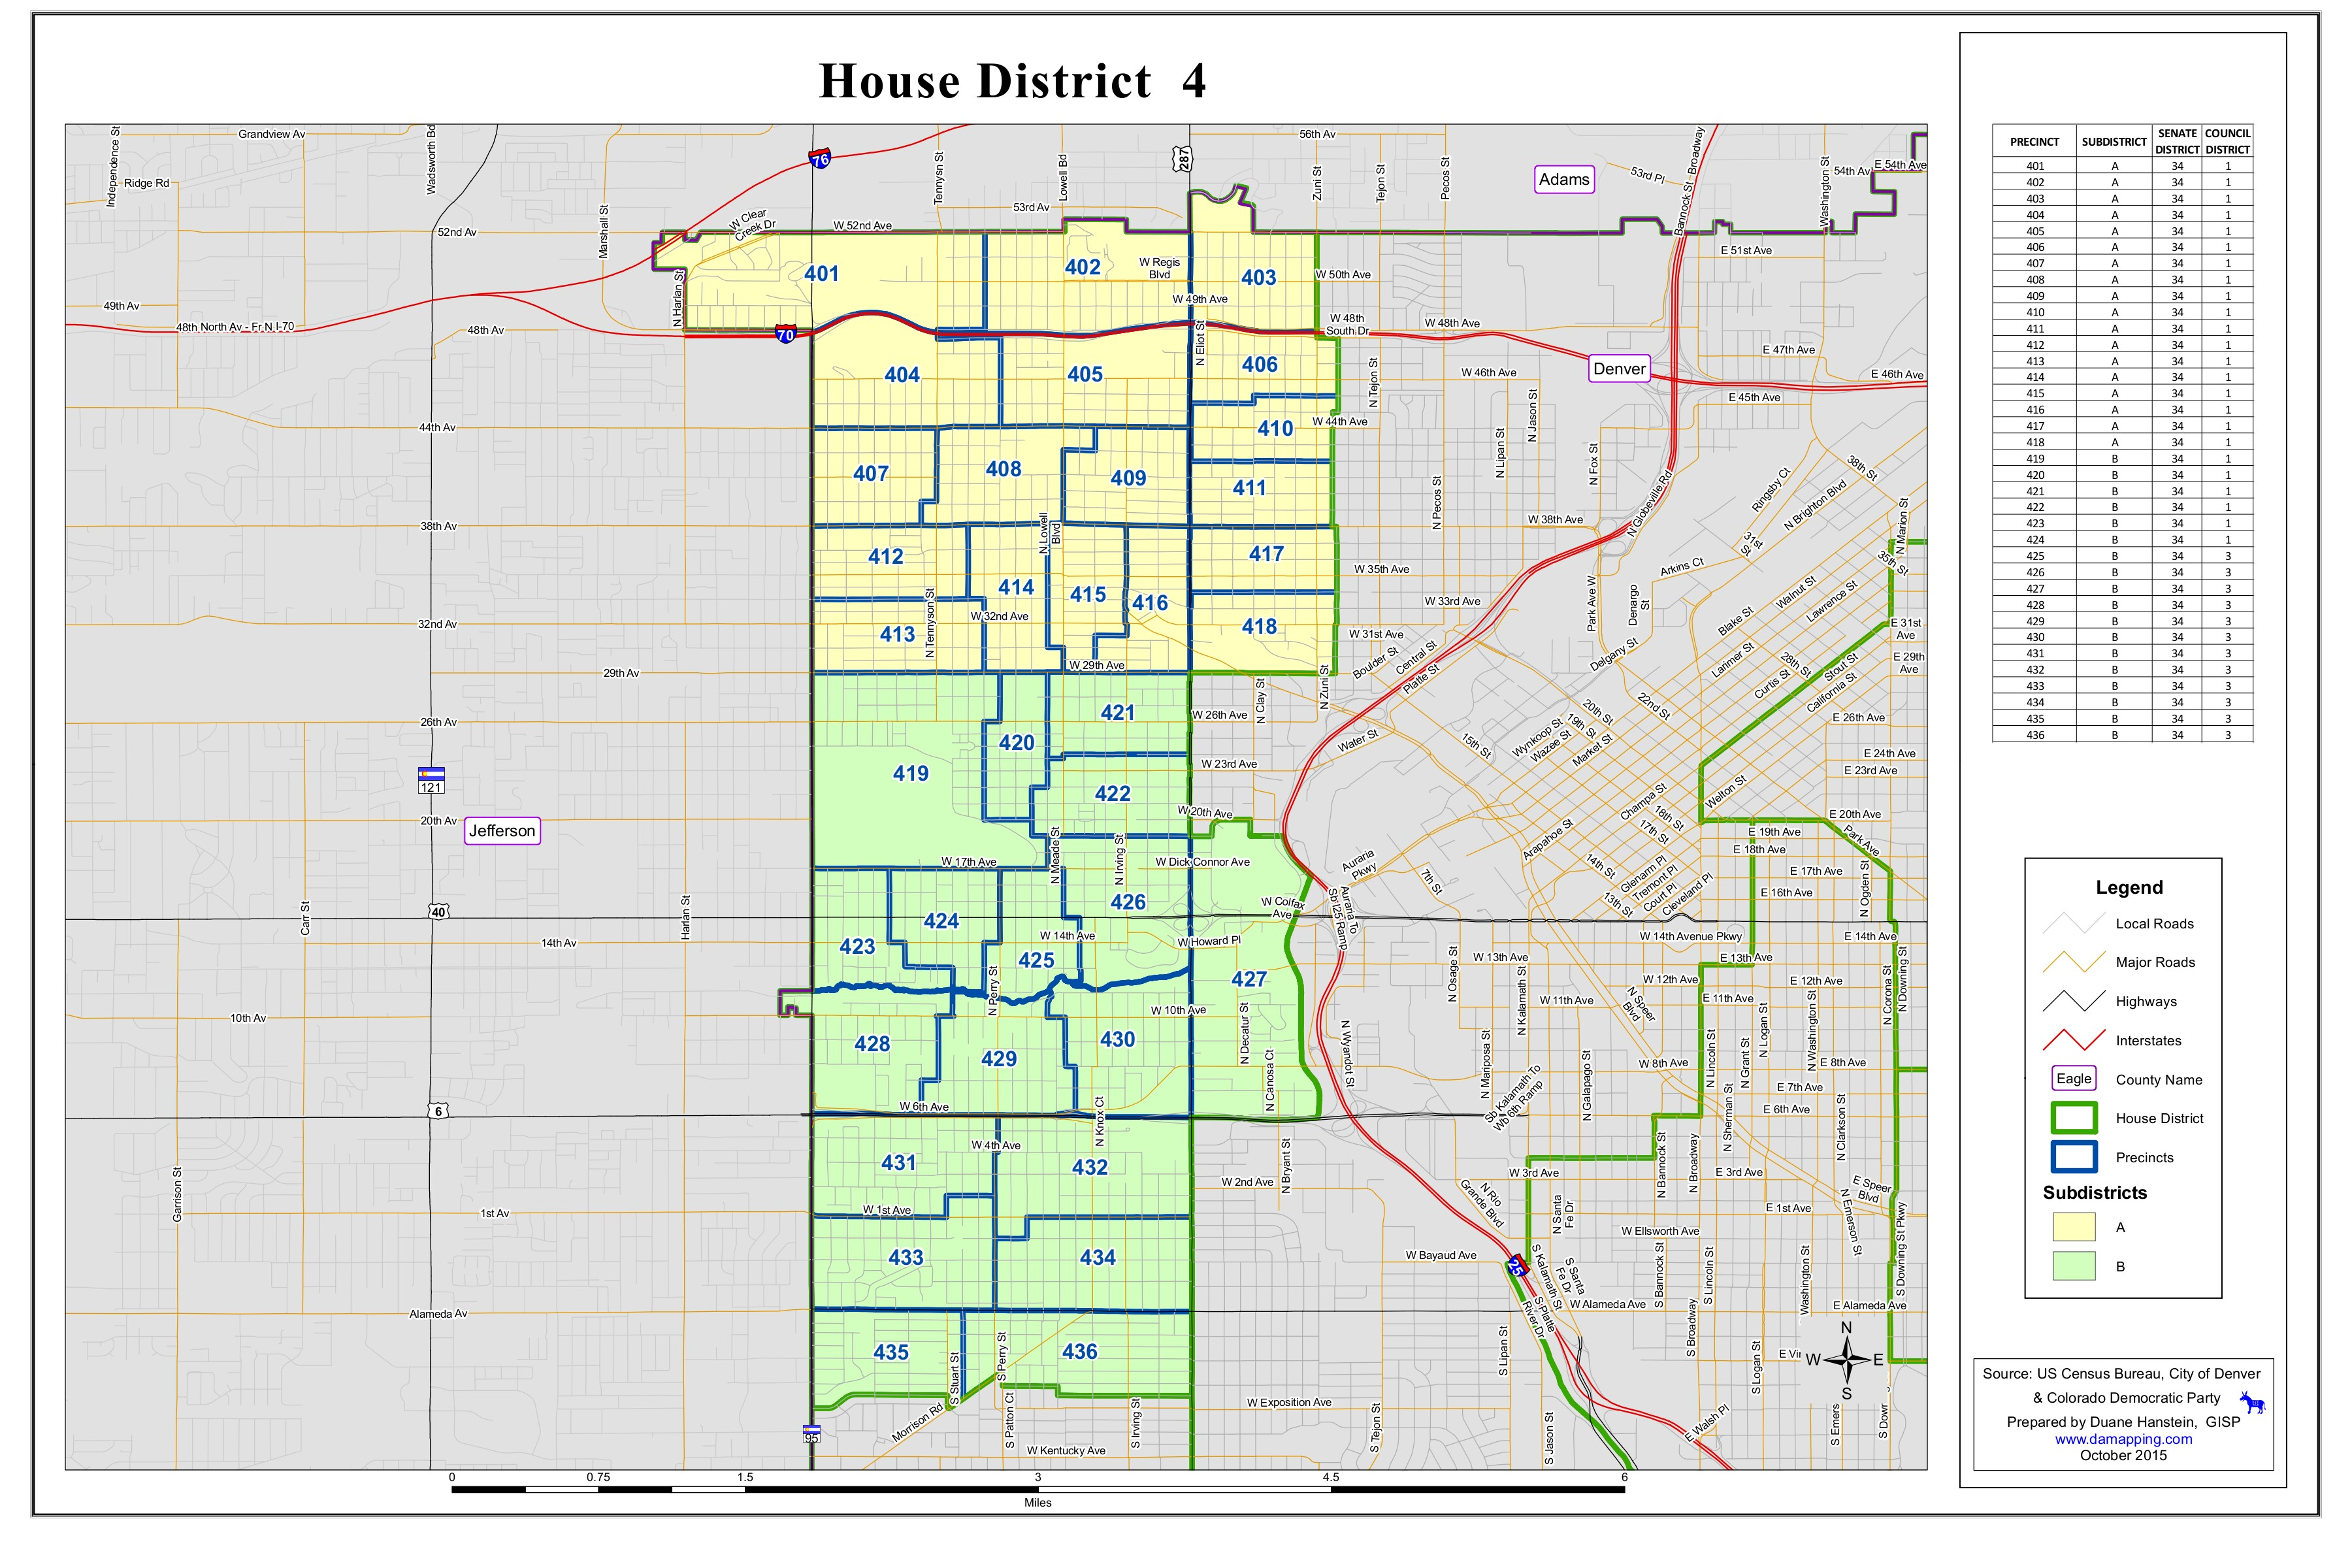 Colorado House District Map House District 4 Map | Democratic Party of Denver